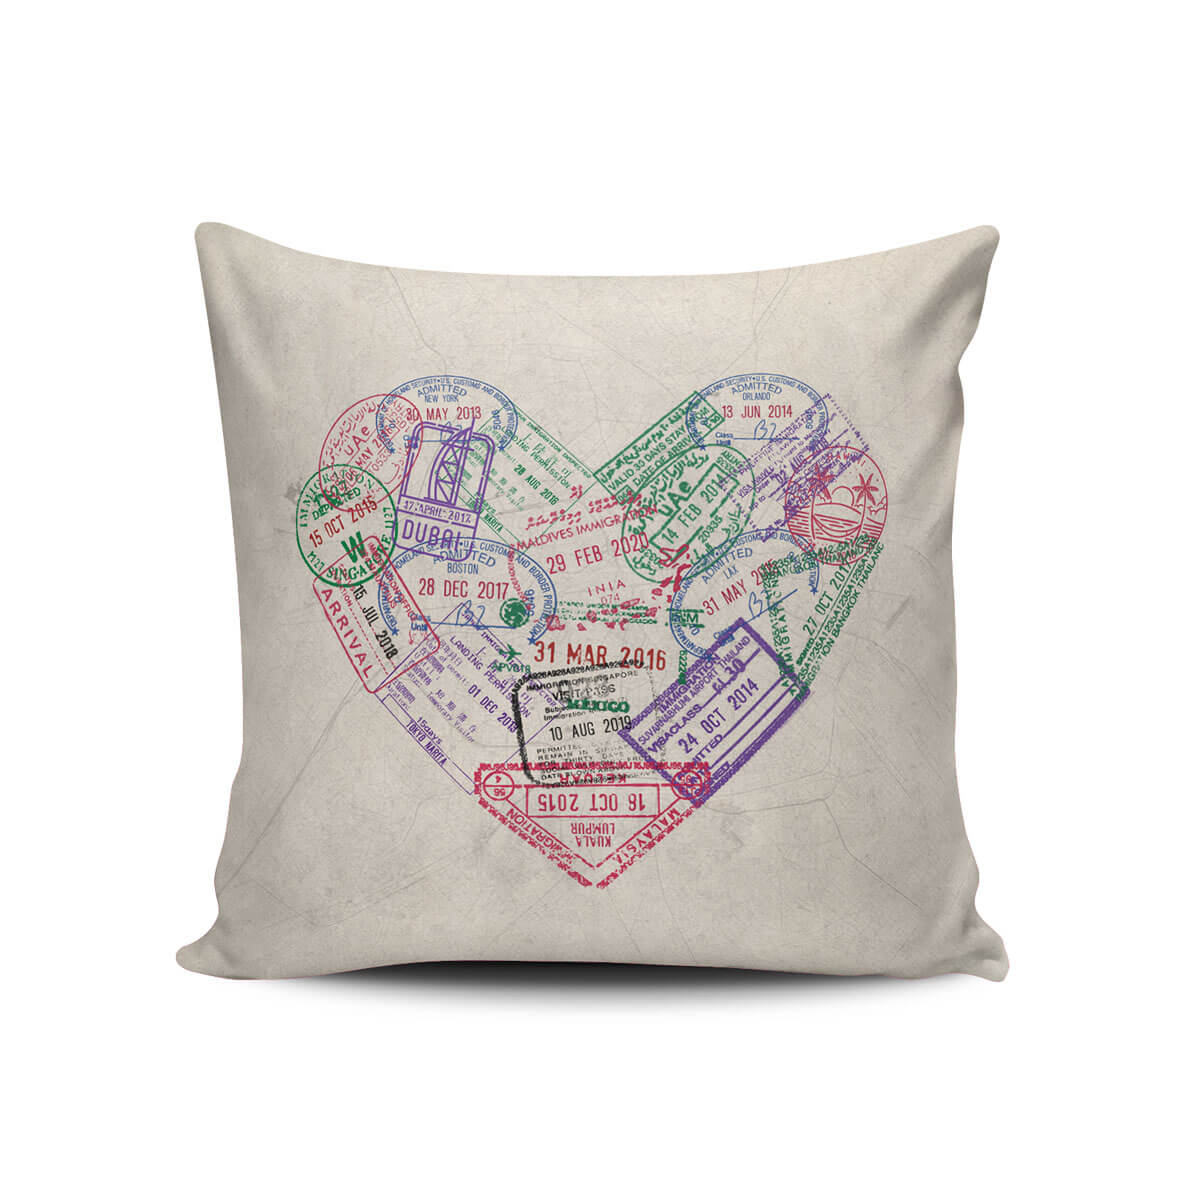 personalised-heart-passport-stamp-pillow-colored